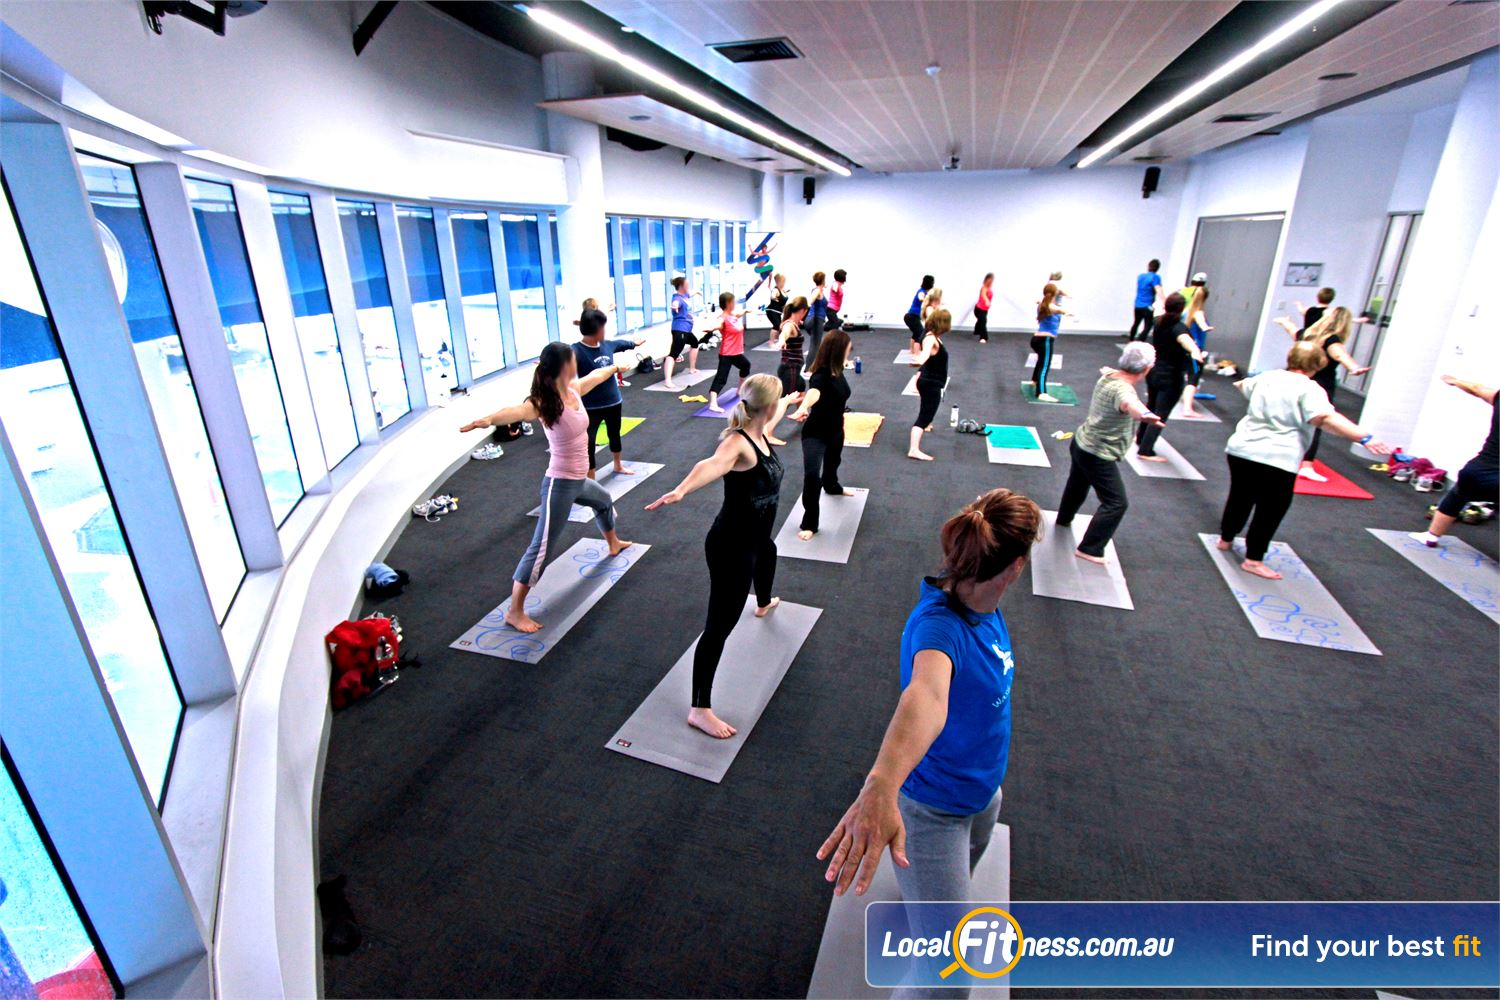 WaterMarc Aquatic & Leisure Centre Near Montmorency Dedicated wellness studio inc. Greensborough Yoga and Pilates.